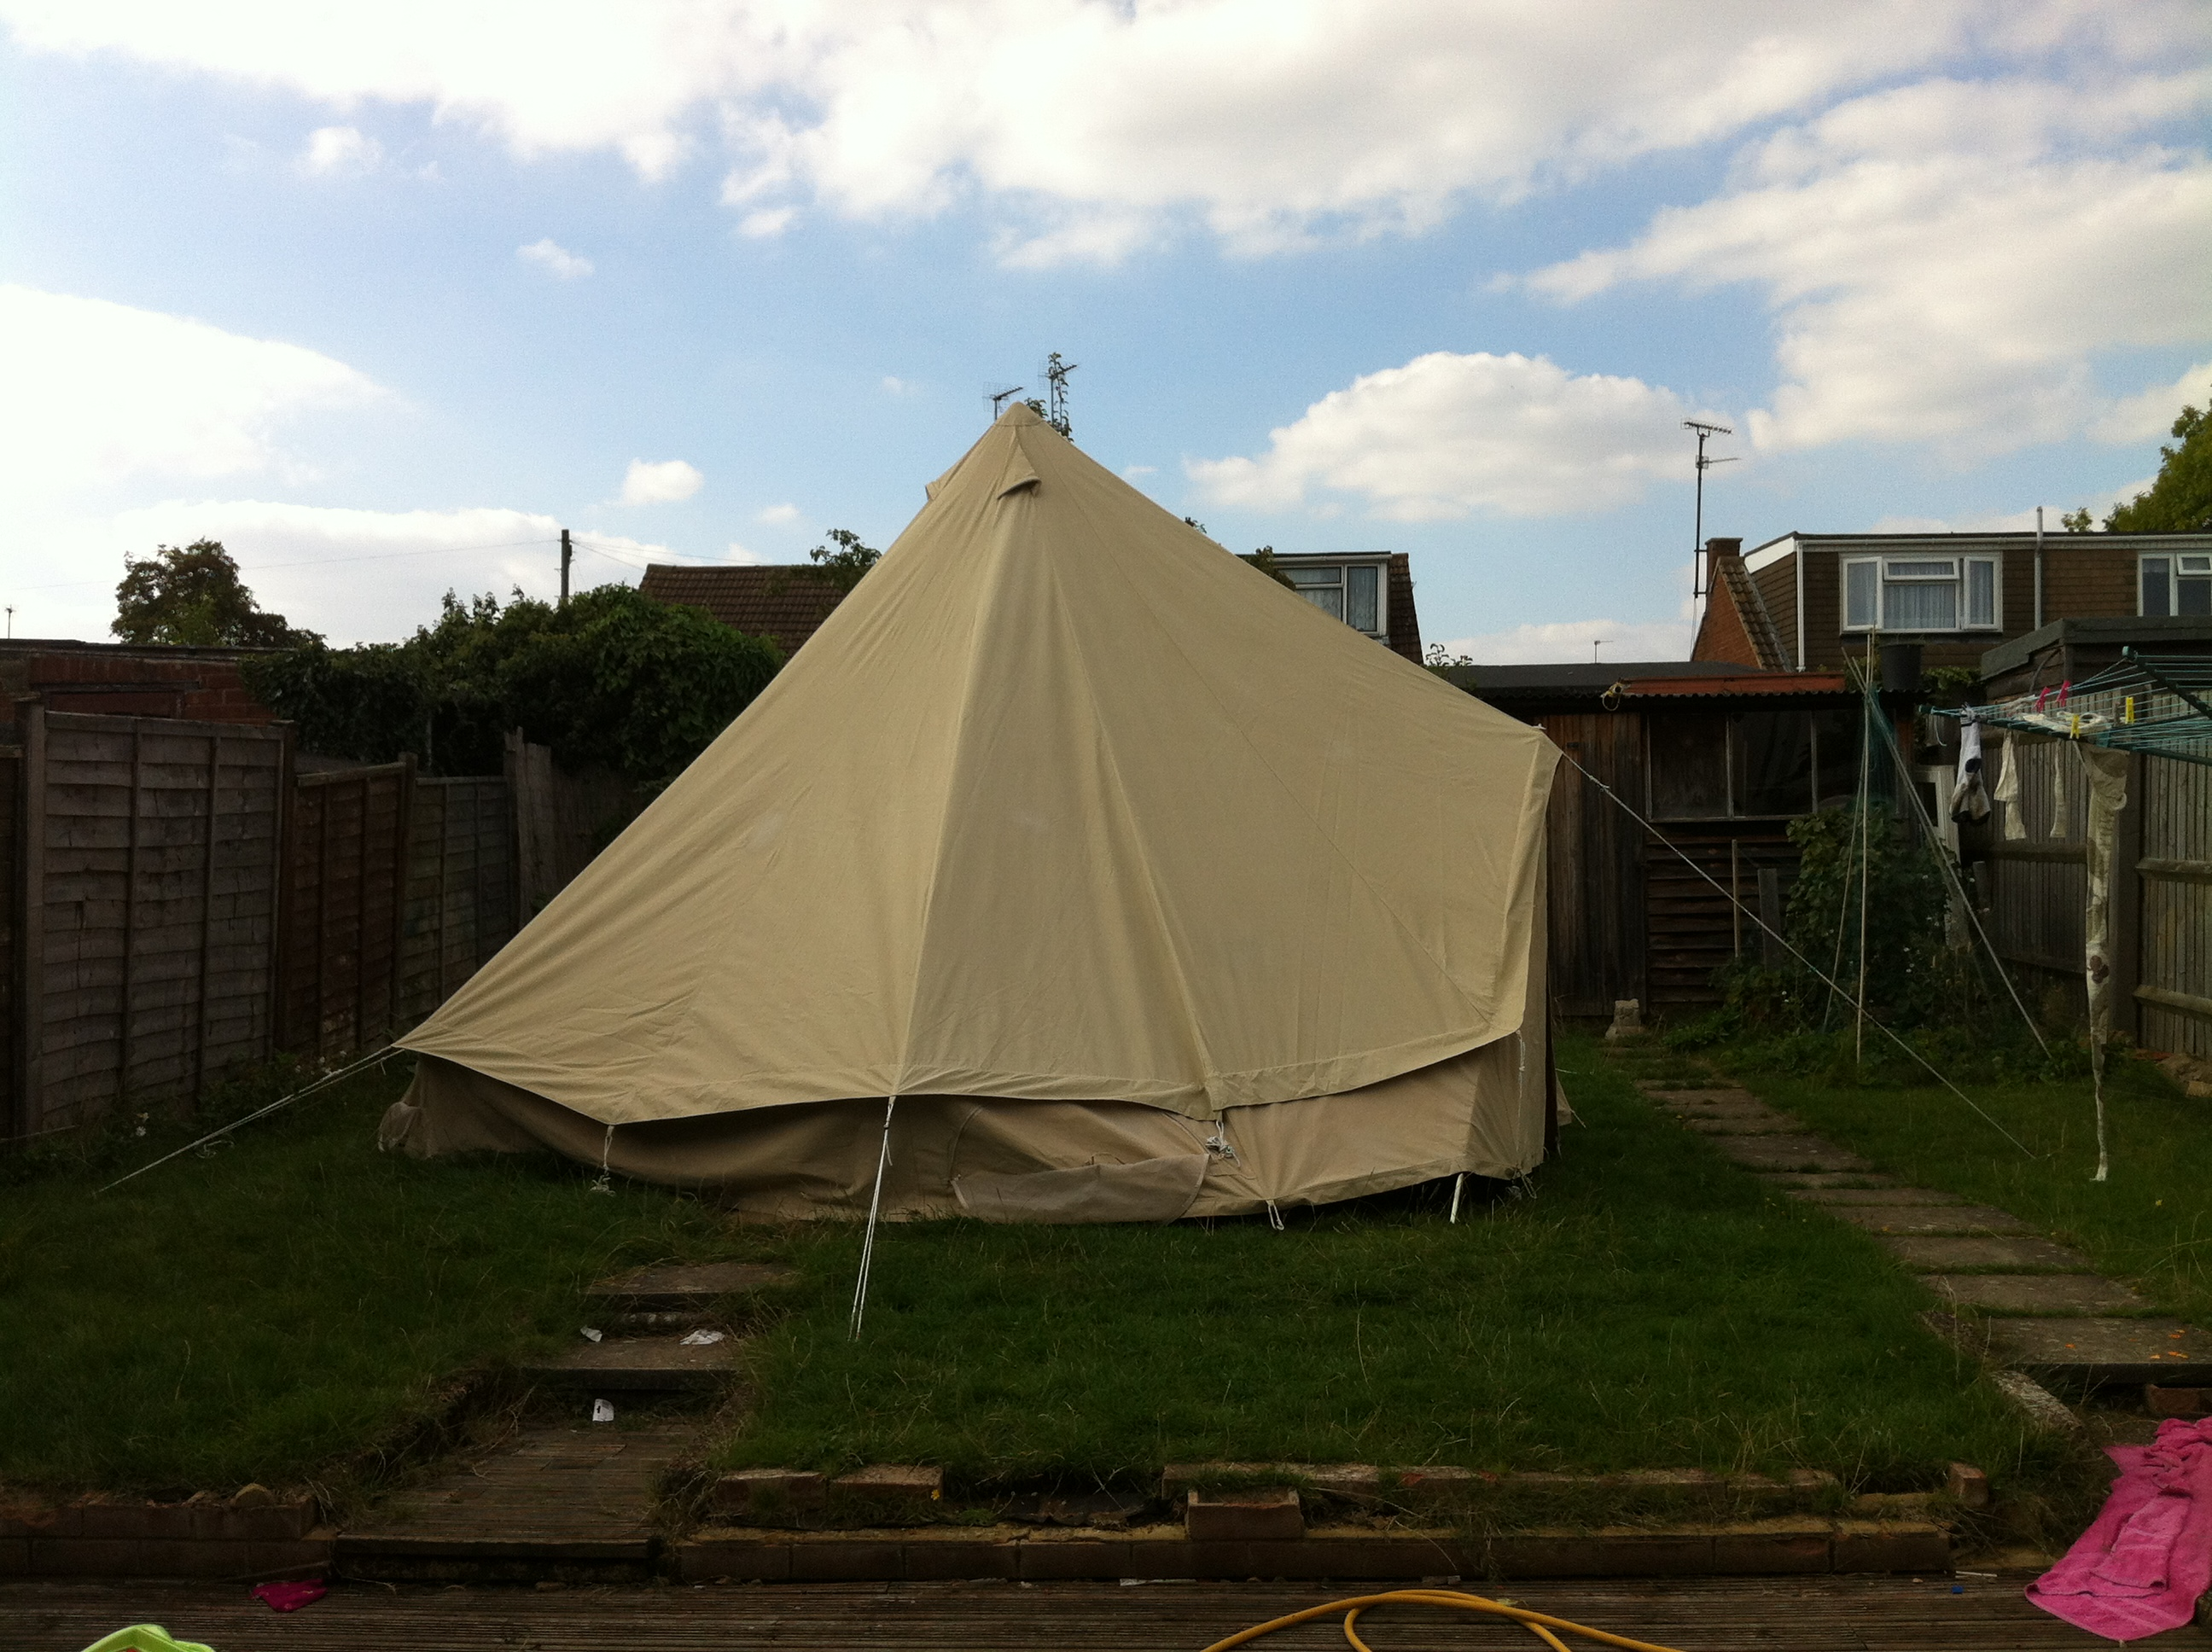 My friend and I scrubbed the mildew on my tent and put on some reproofing solution. The kids popped in now and then. & bell tent | Reclaiming Harmony